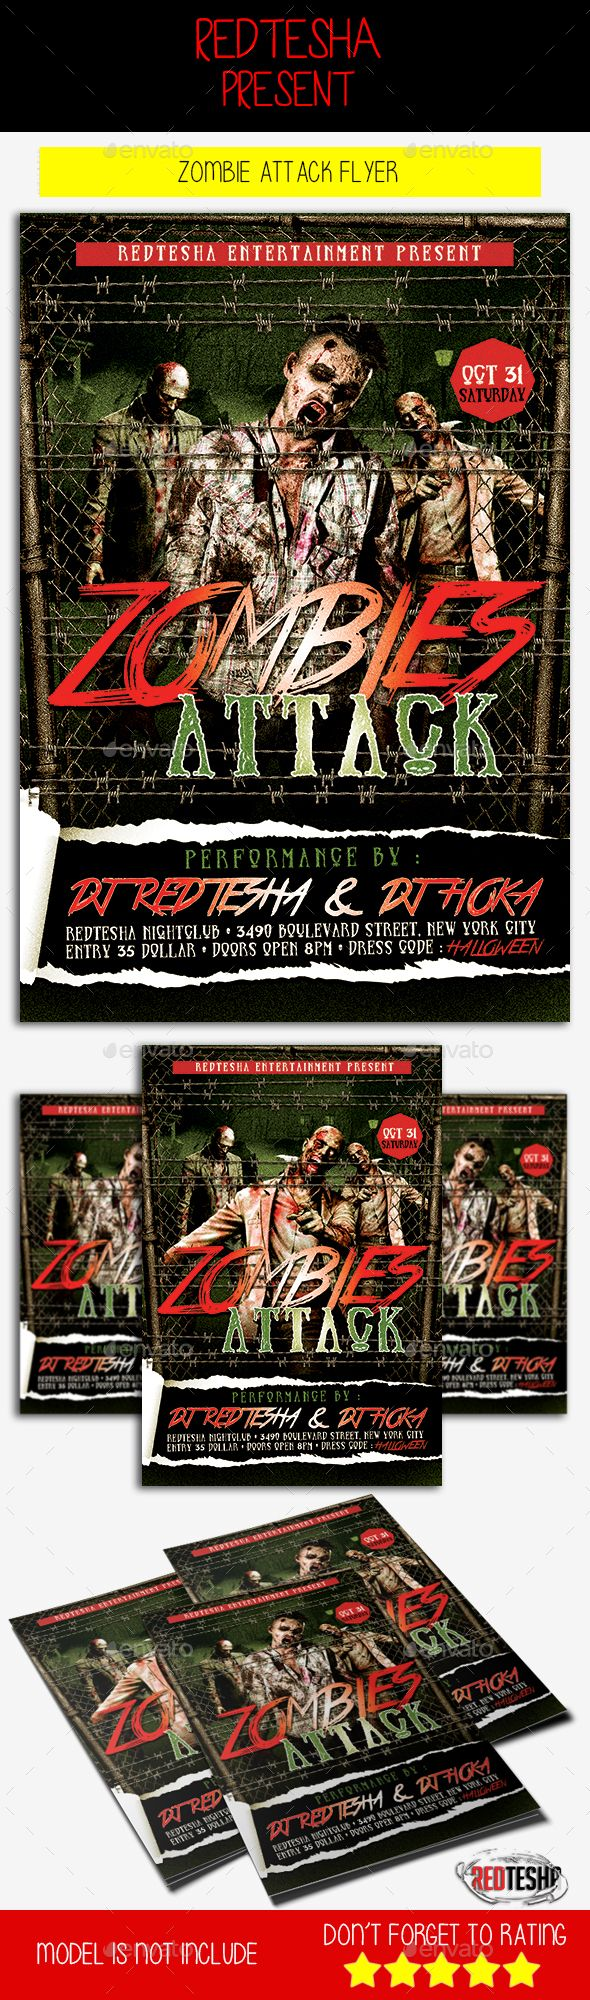 ready to have halloween party? this zombie attack flyer now